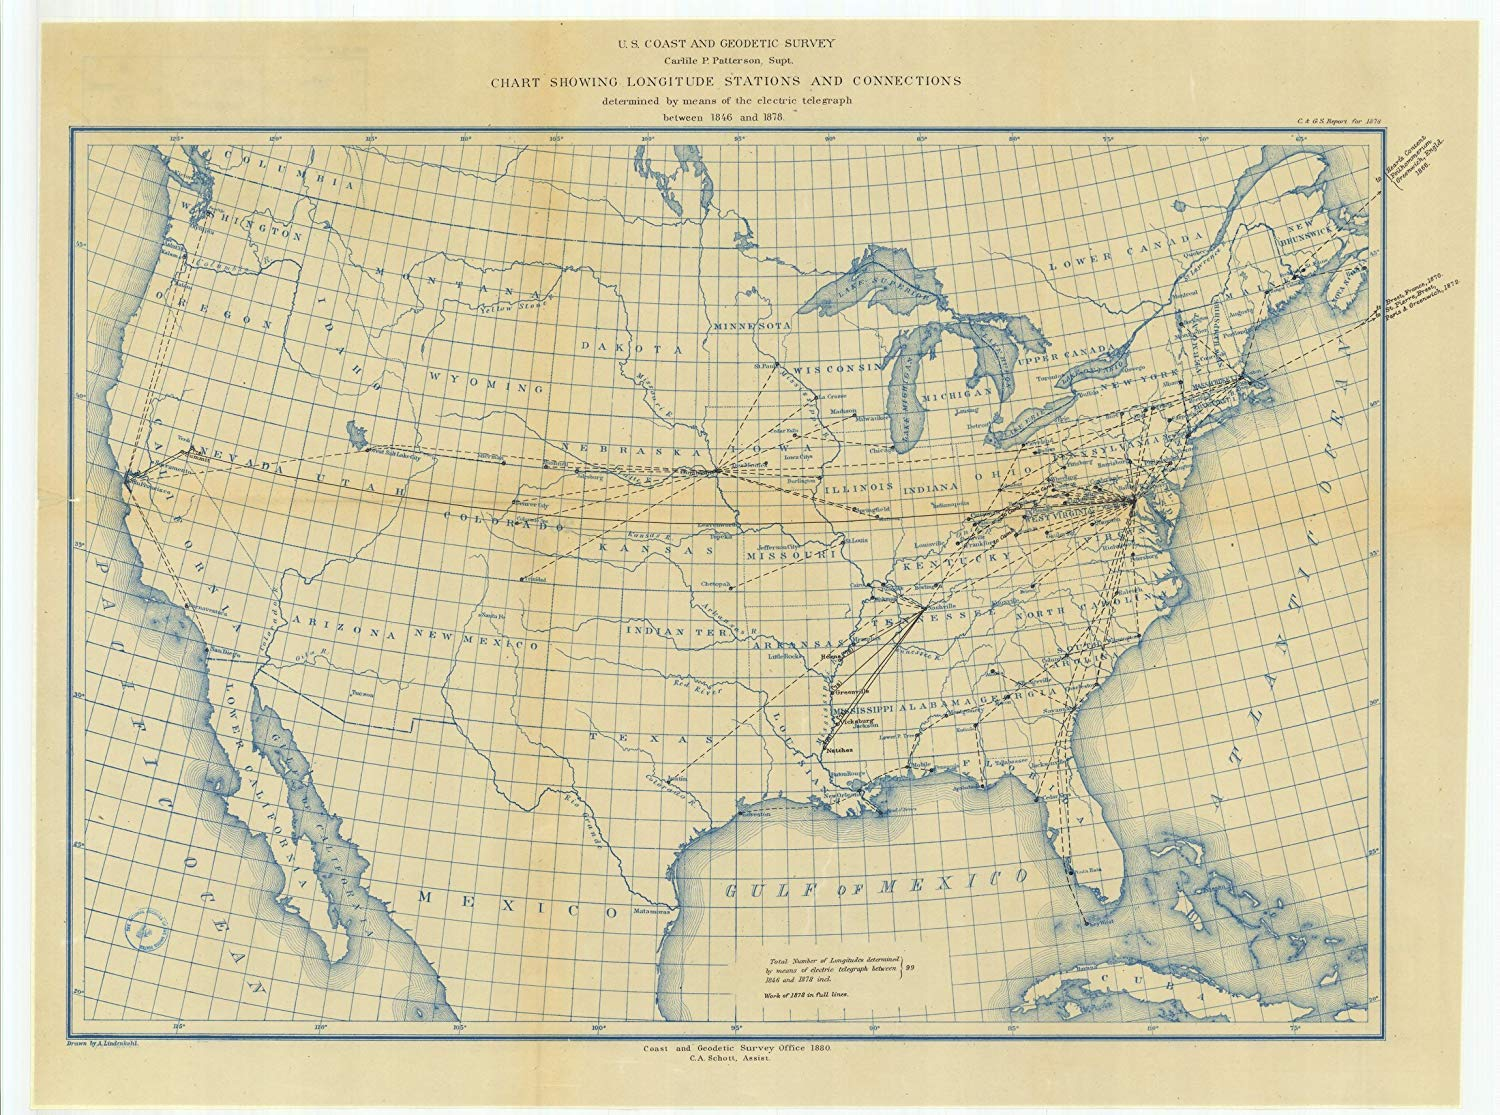 Vintography 24 x 36 Giclee Print Nautical Map or Image of Chart Showing Longitude Stations and Connections Determined by Means of The Electric Telegraph Between 1846 and 1878 1880 NOAA 80a